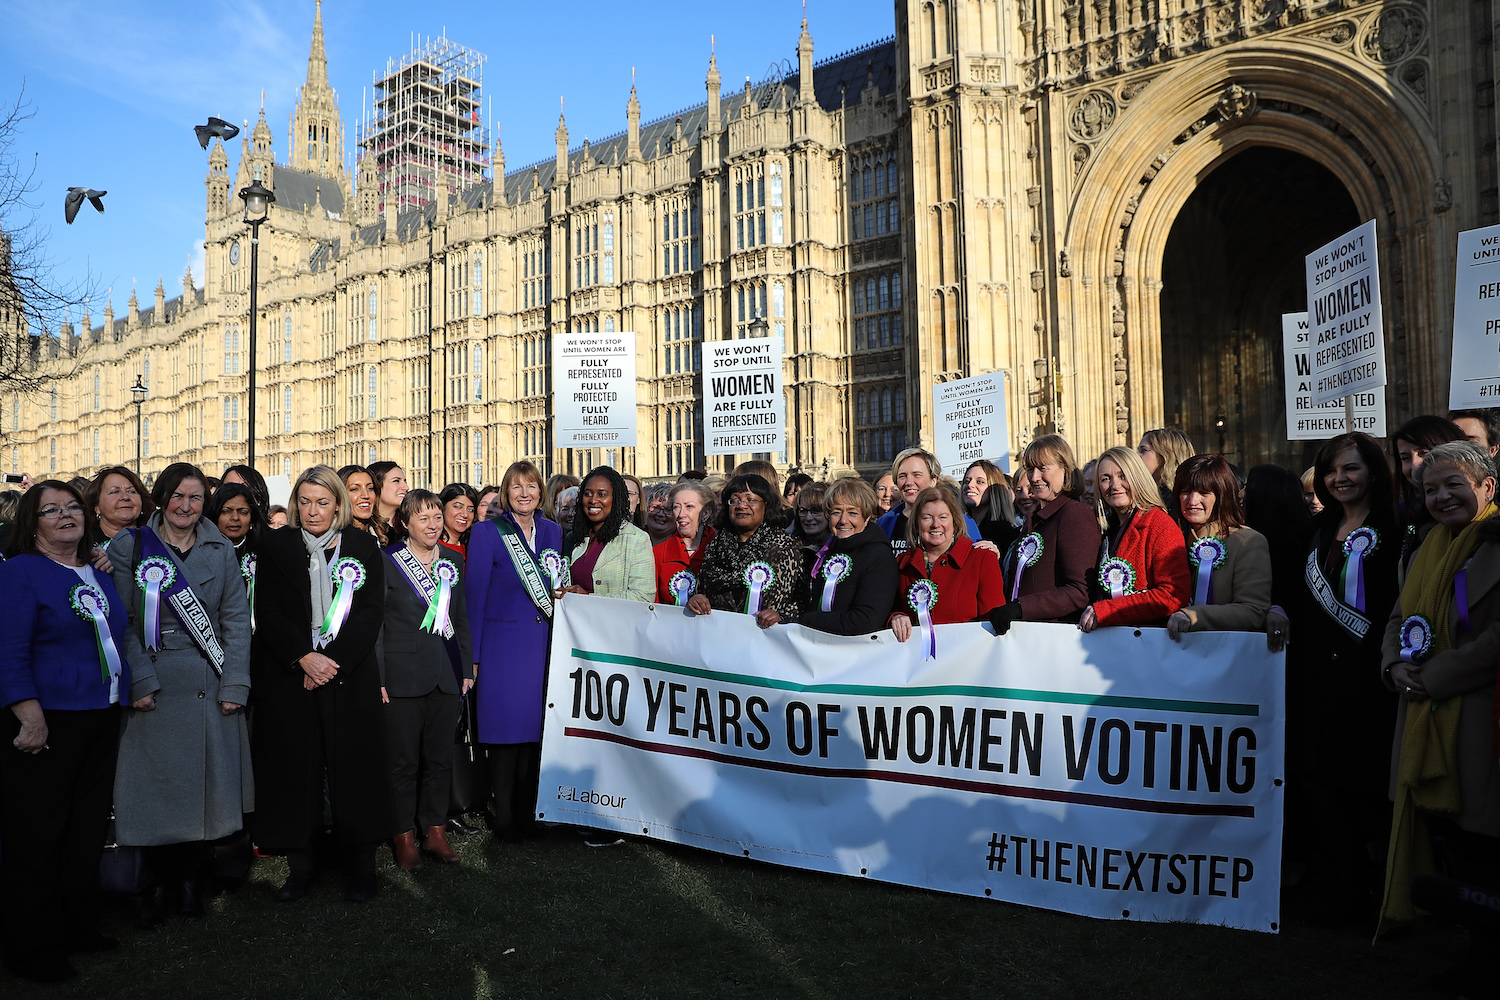 Female members of the Shadow Cabinet and Labour politicians stand on college green with a '100 Years of Women Voting' banner in London, England on Feb. 6. (Photo by Dan Kitwood/Getty Images)